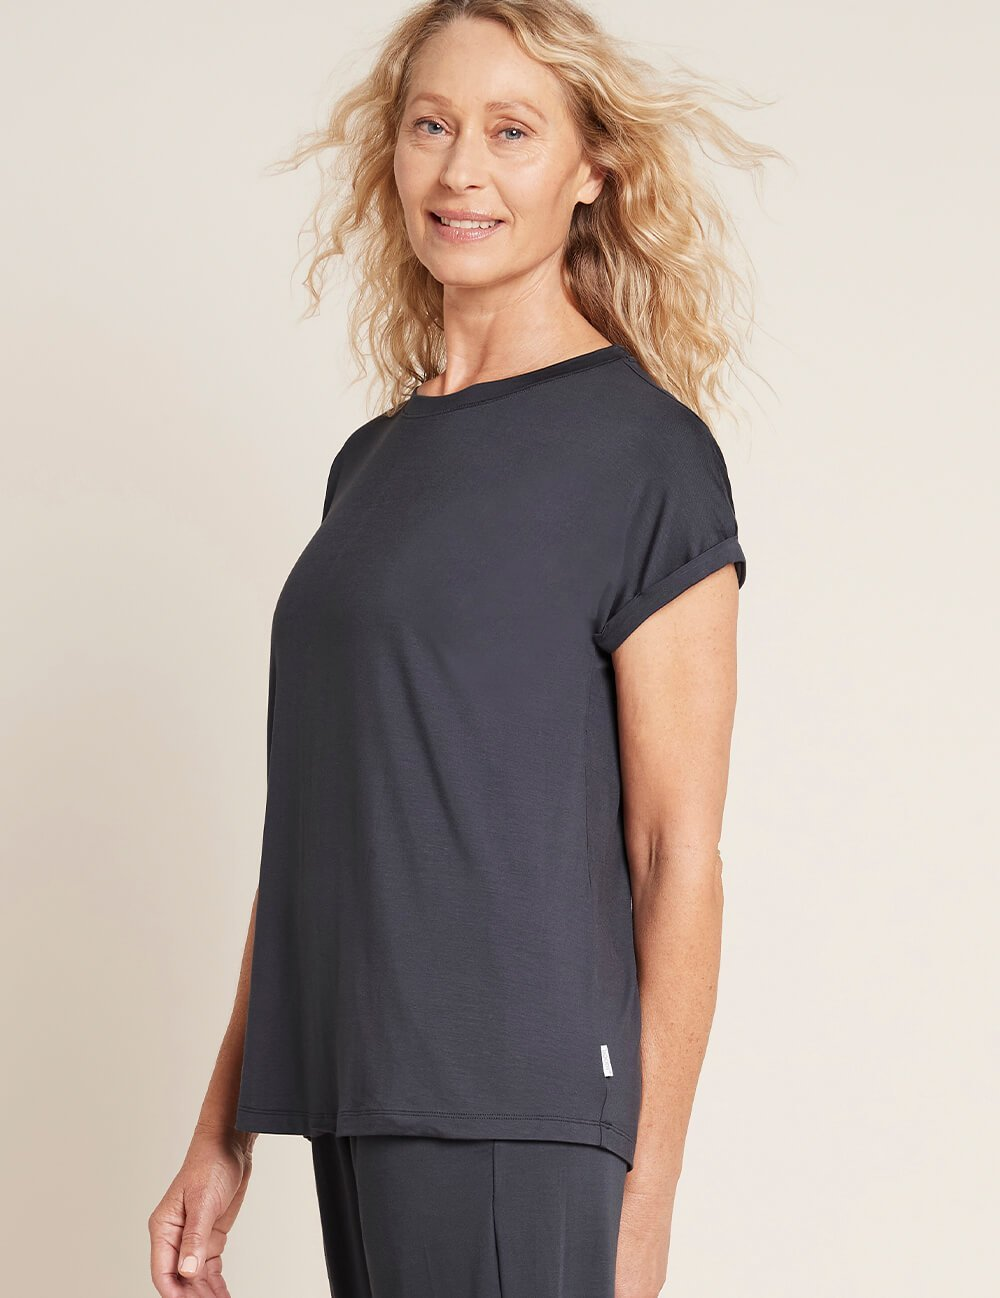 Downtime Lounge Top